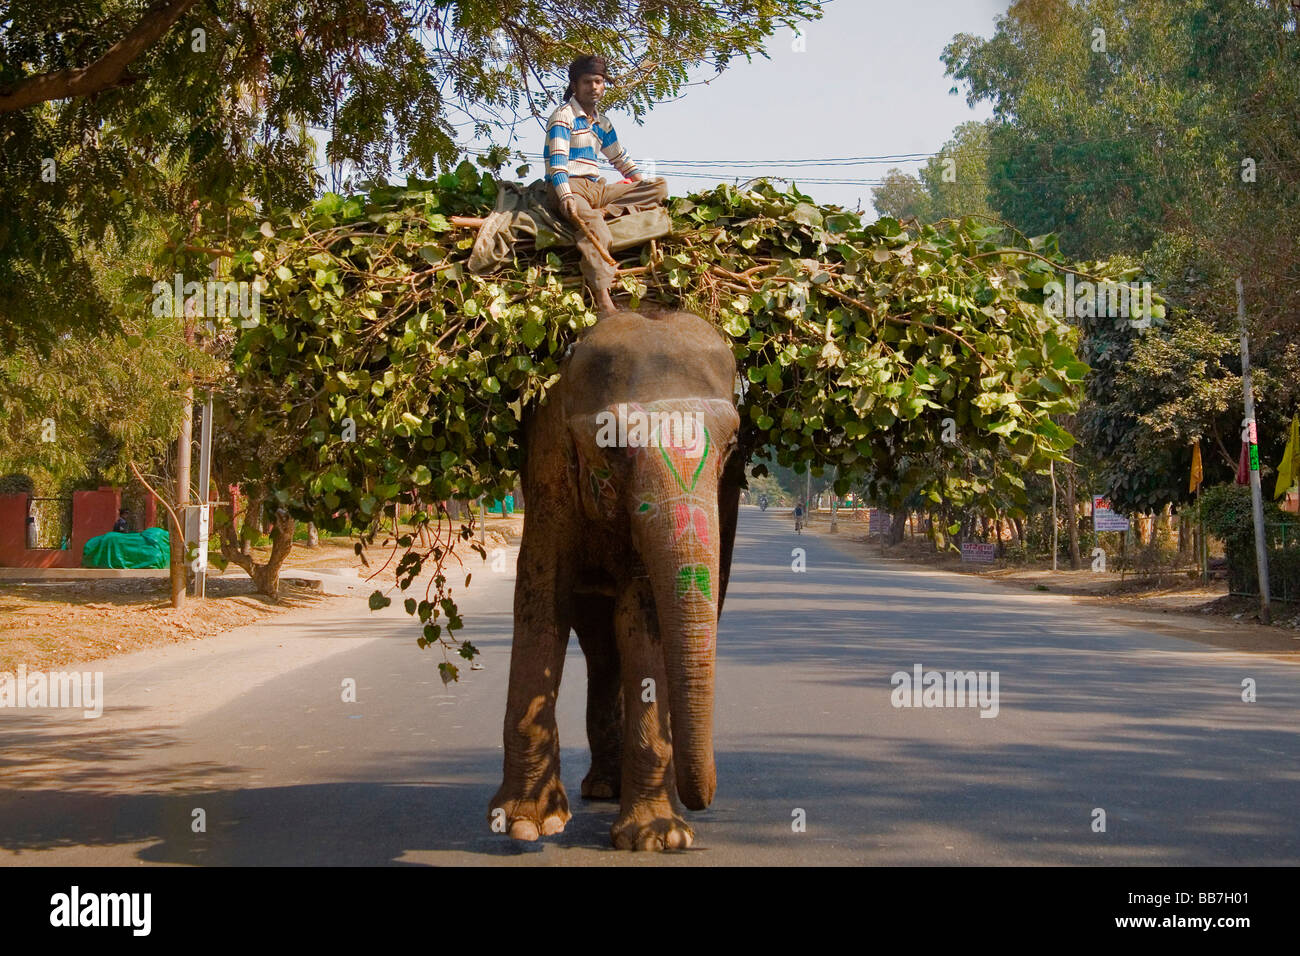 Indian elephant transporting food for animals, North India, India, Asia - Stock Image